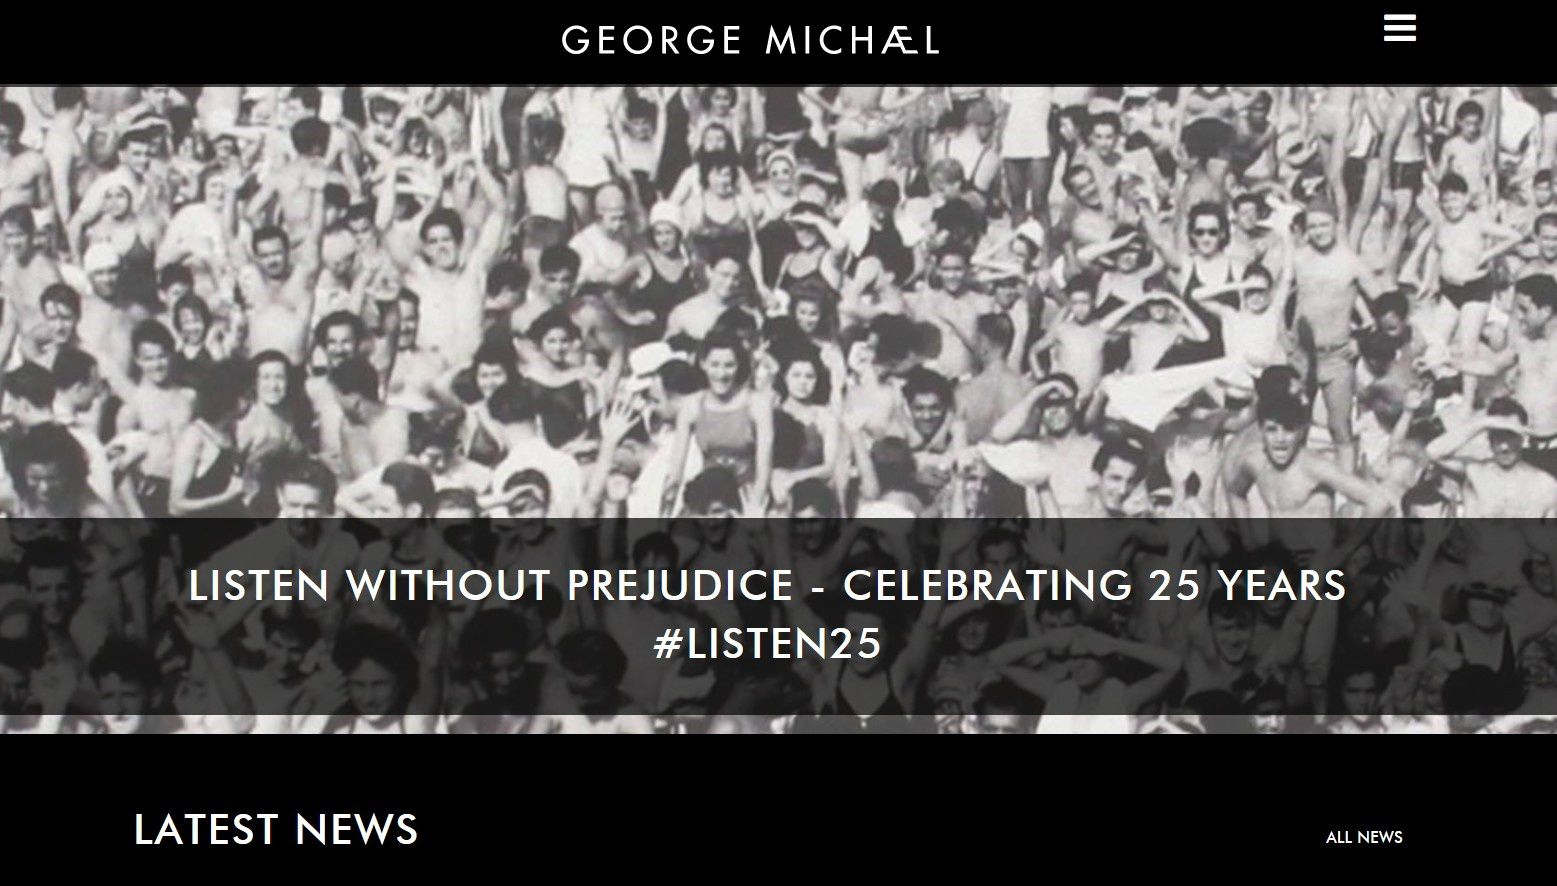 LE SITE OFFICIEL EST TRES *LISTEN WITHOUT PREJUDICE* !